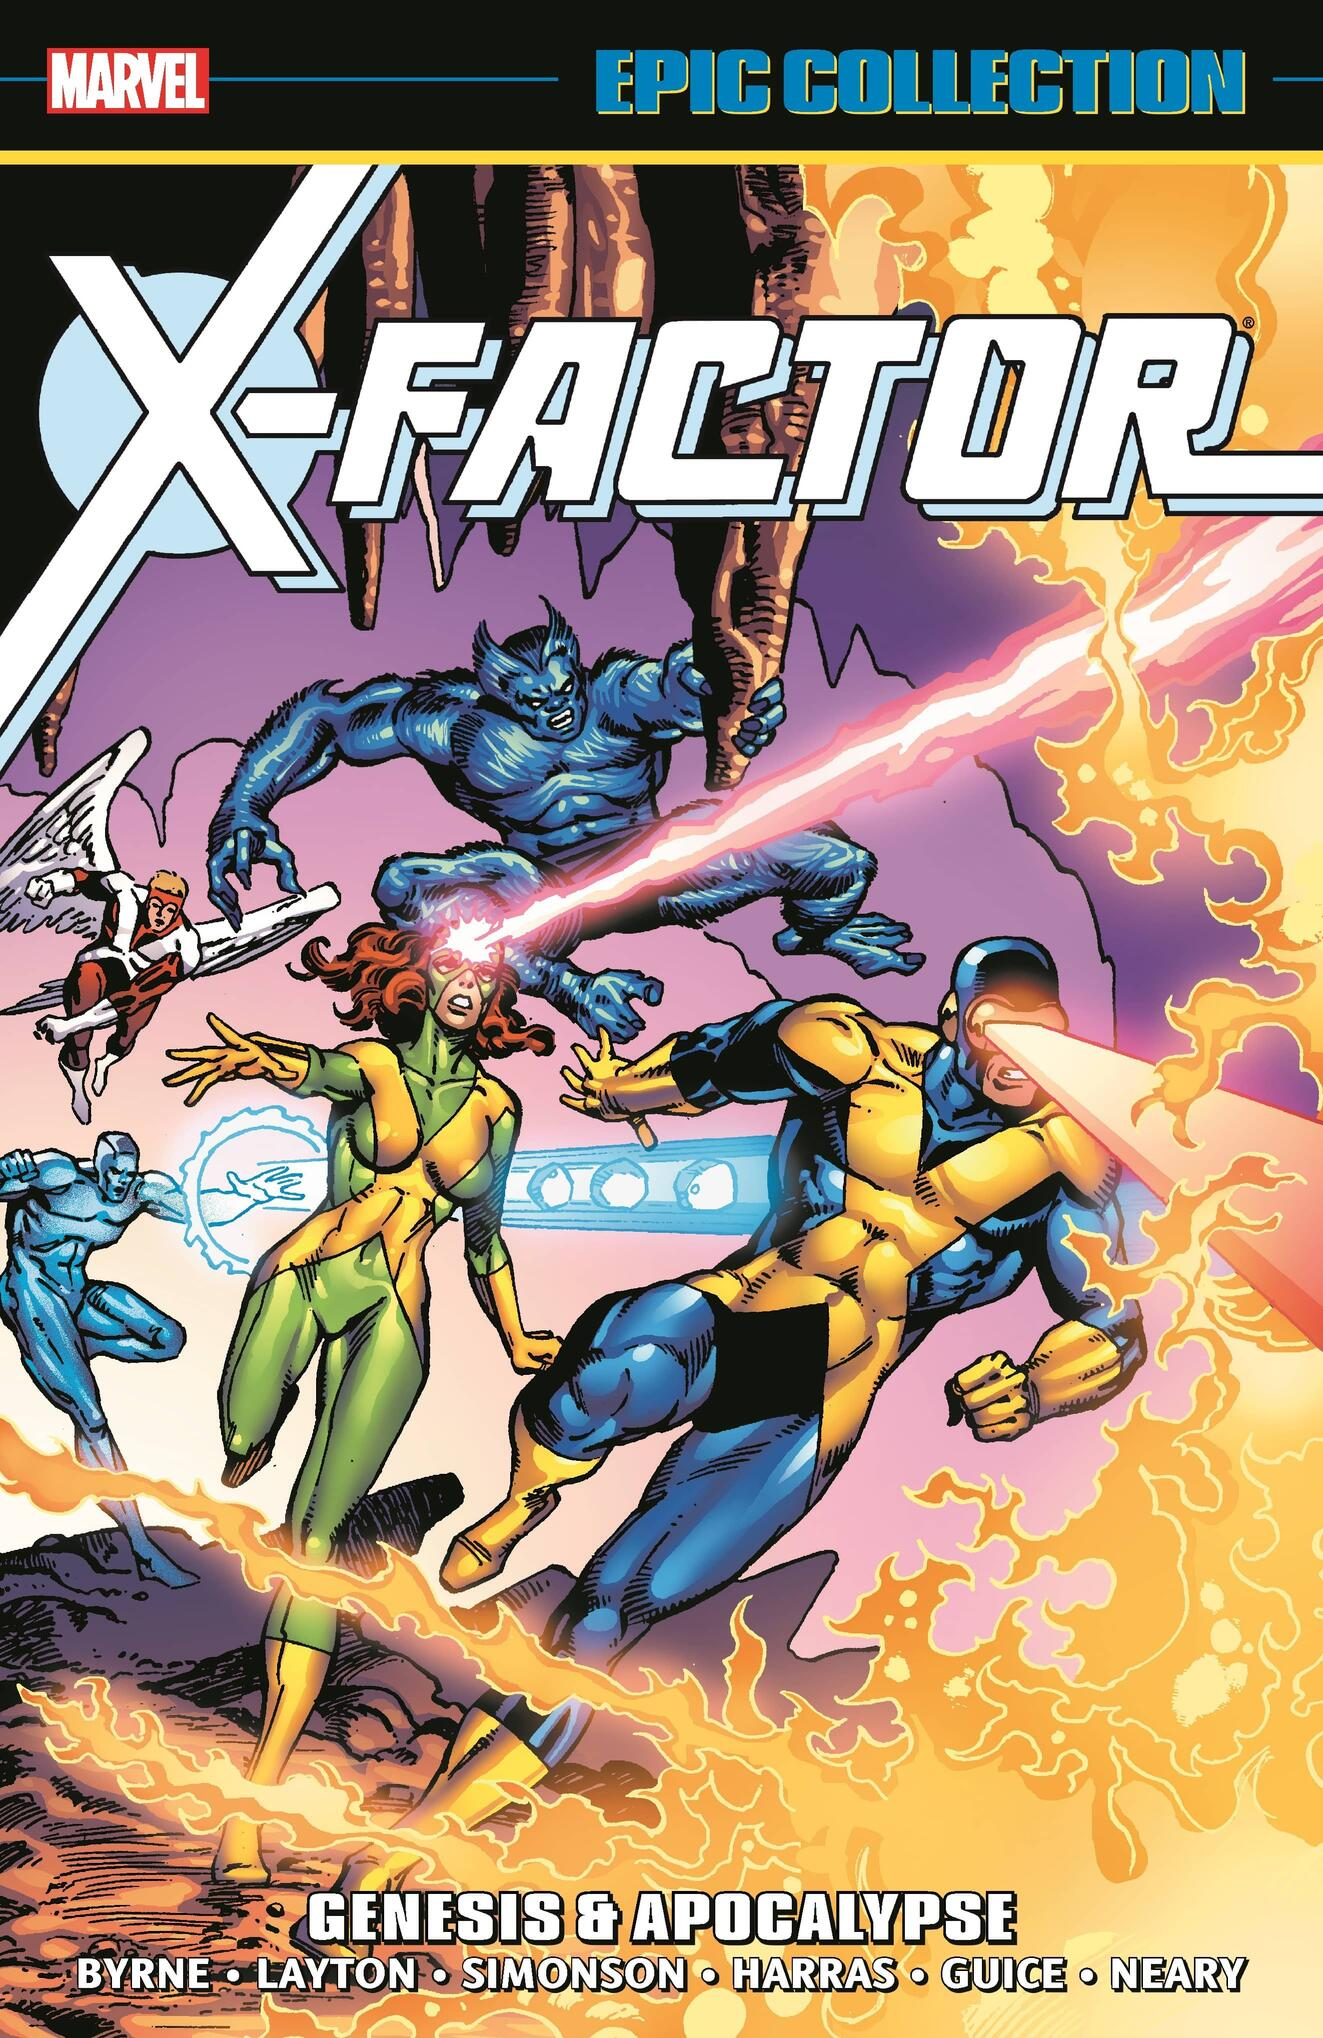 Cover to X-Factor Epic Collection: Genesis & Apocalypse (Trade Paperback).